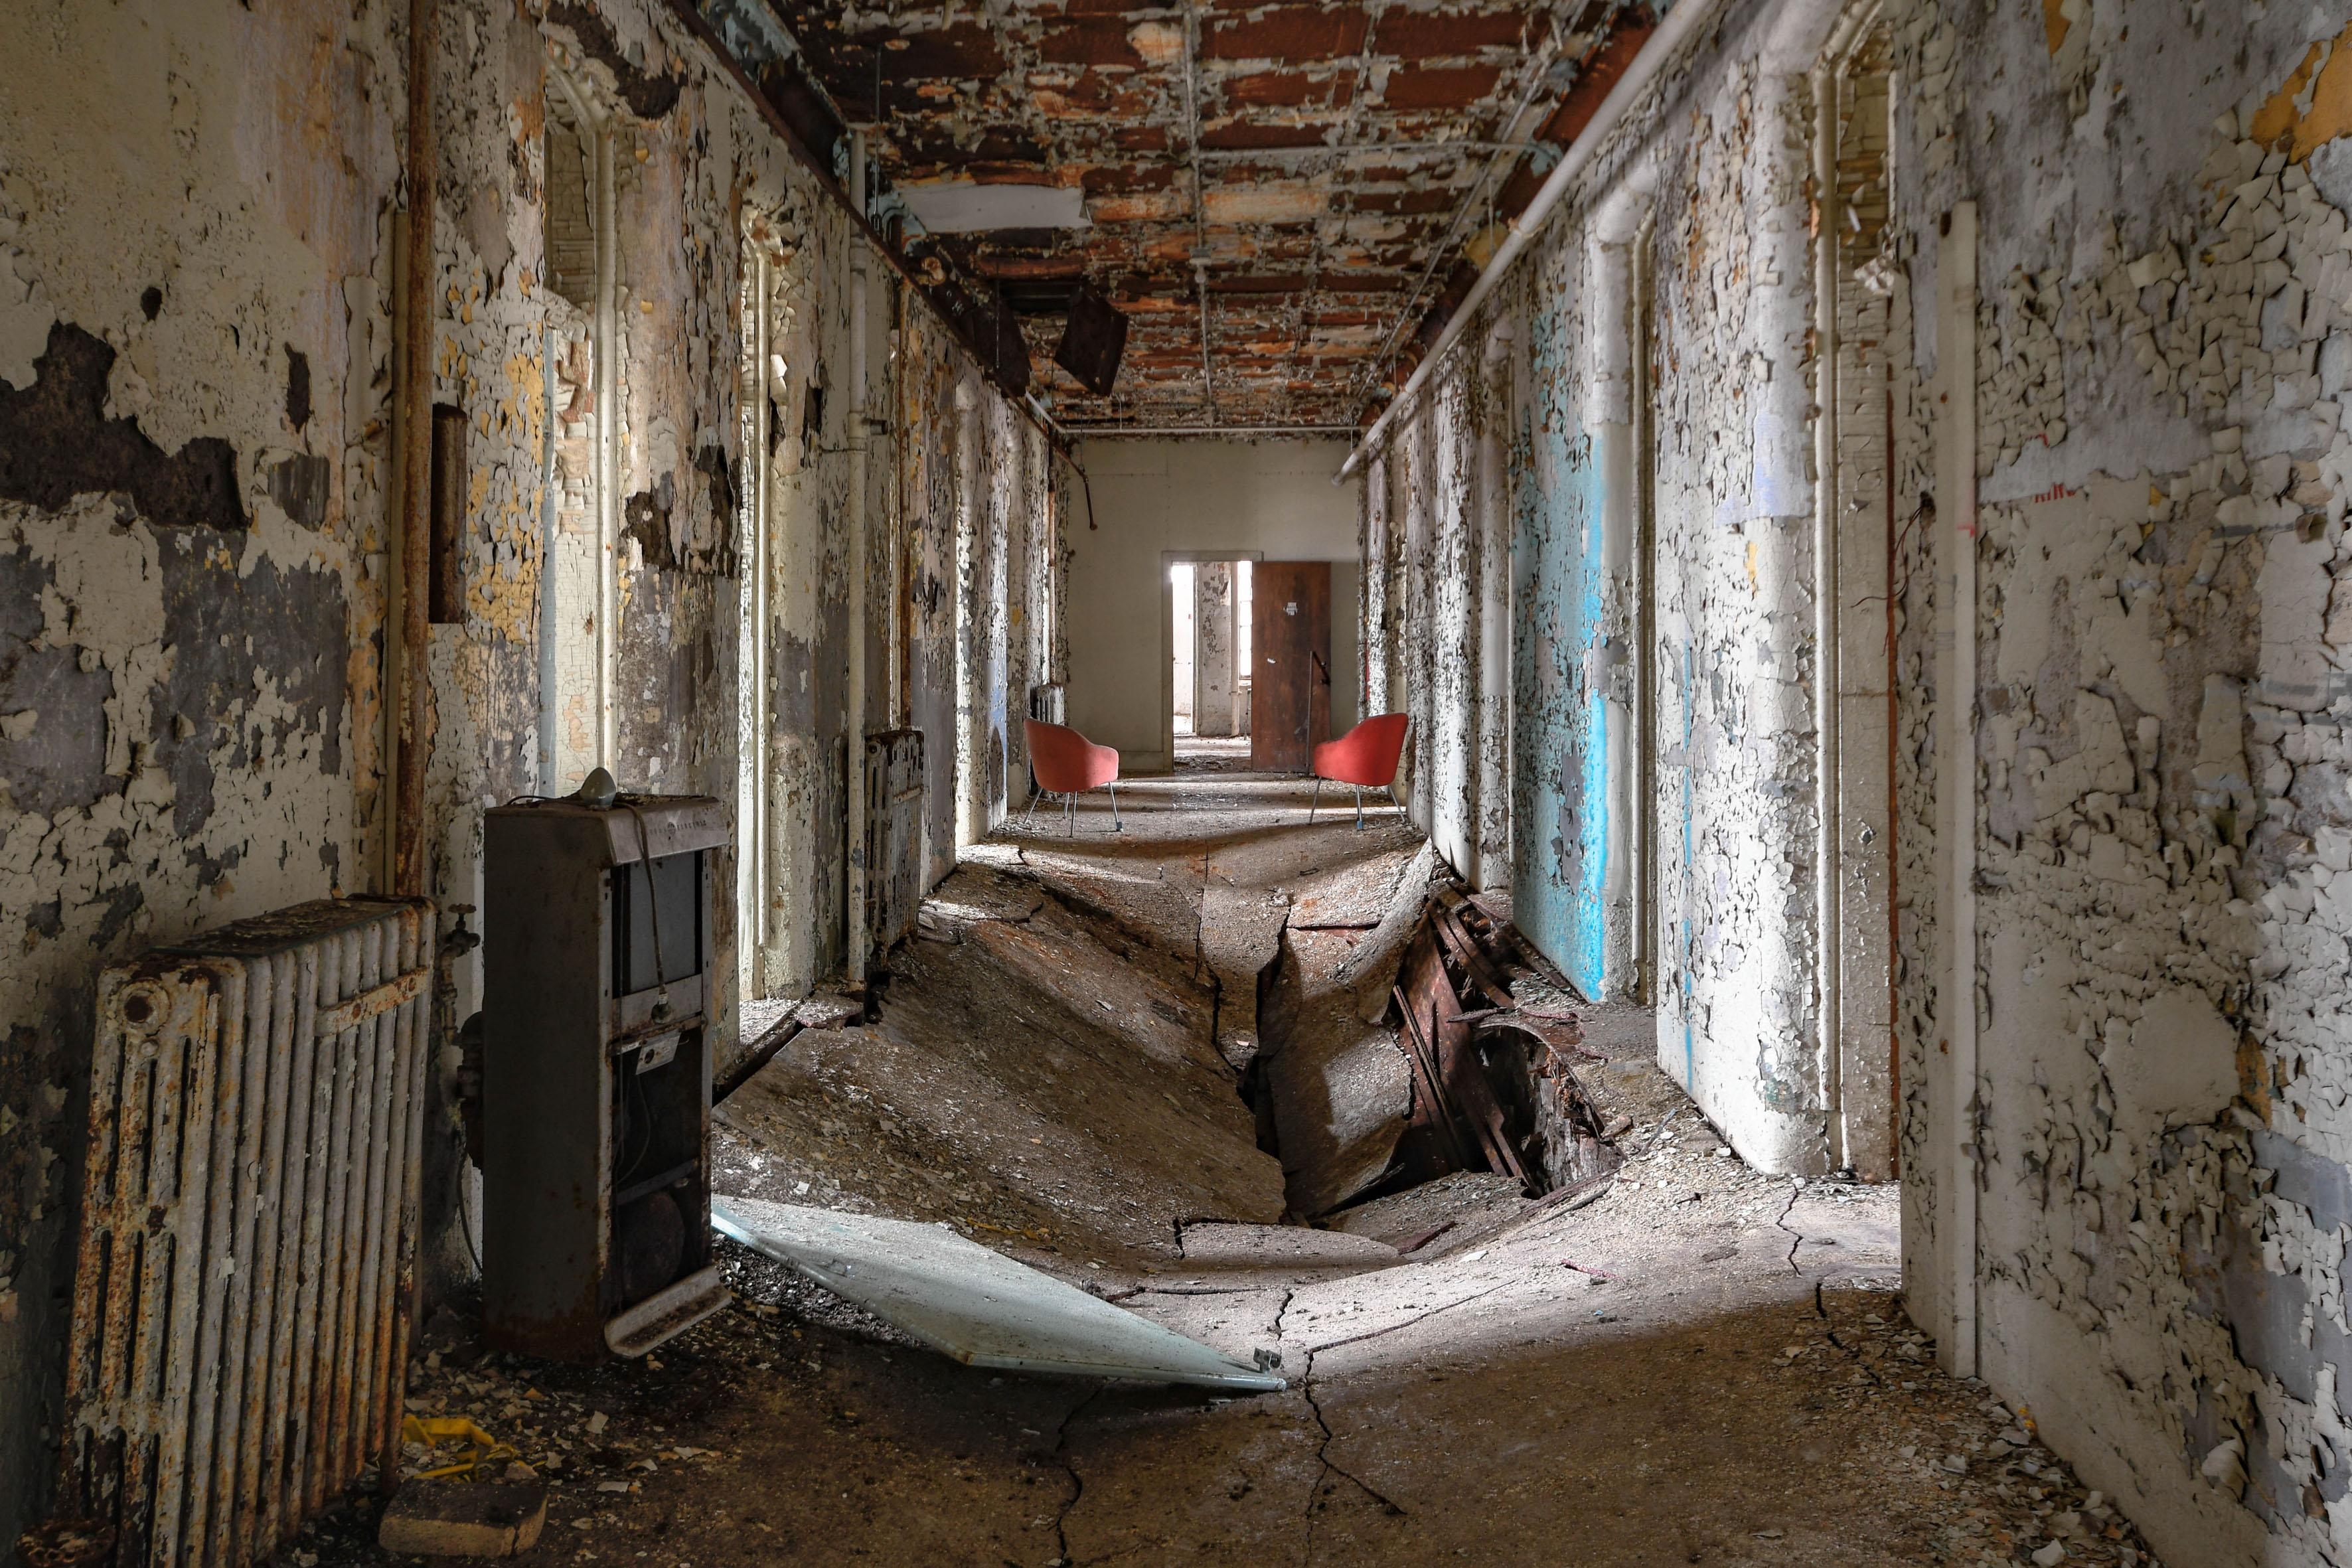 <p>These eerie images showcase the haunting abandoned asylums that lie dotted across secluded parts of the U.S. and Canada. (Photo: Freaktography/Caters News) </p>